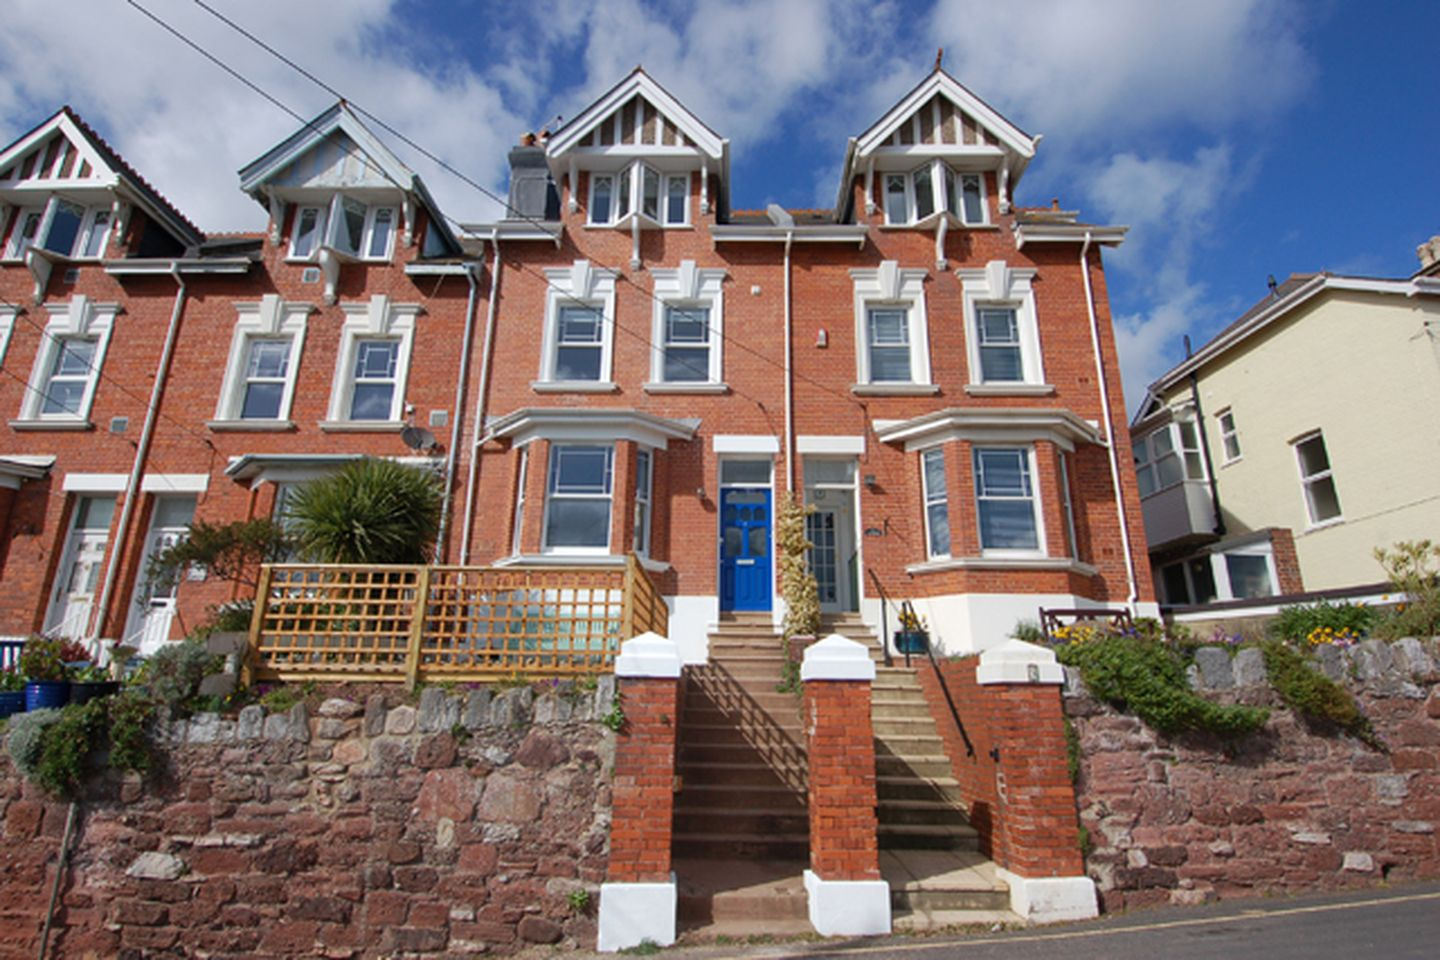 Holiday Cottage Reviews for Sunny Mount - Self Catering Property in Teignmouth, Devon